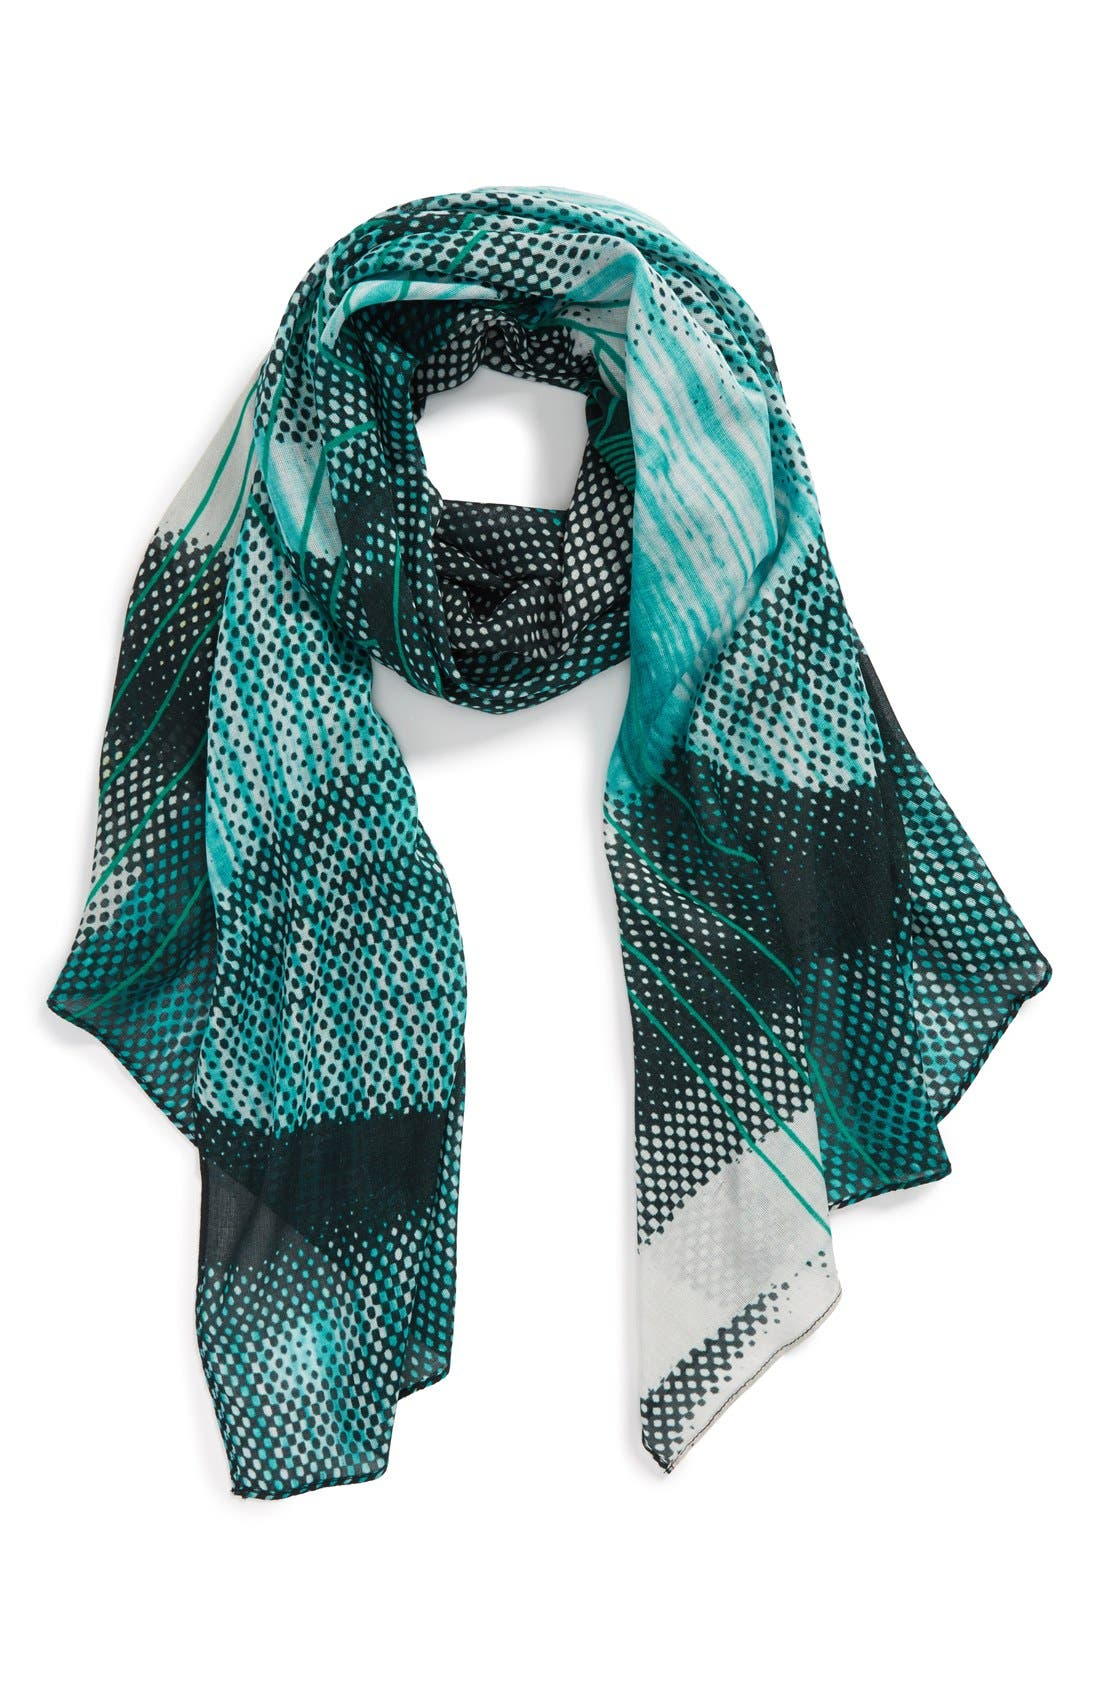 Alternate Image 1 Selected - Front Row Society 'Weft' Scarf